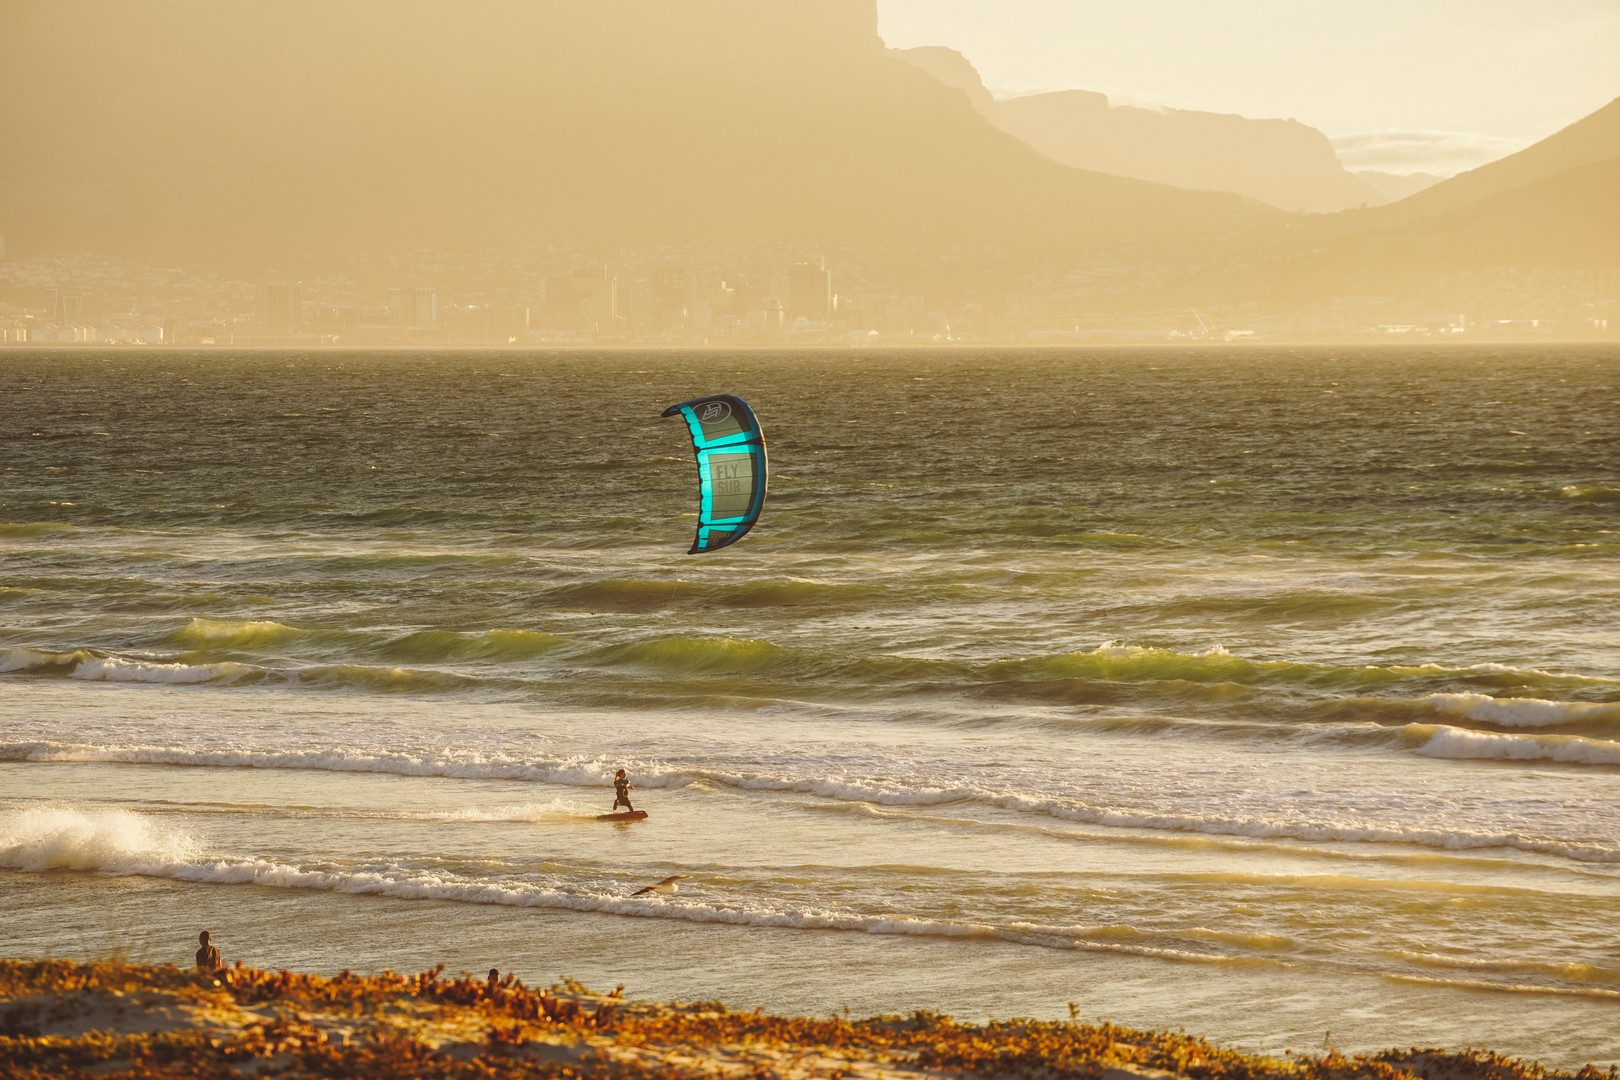 Kitetheearth in Capetown